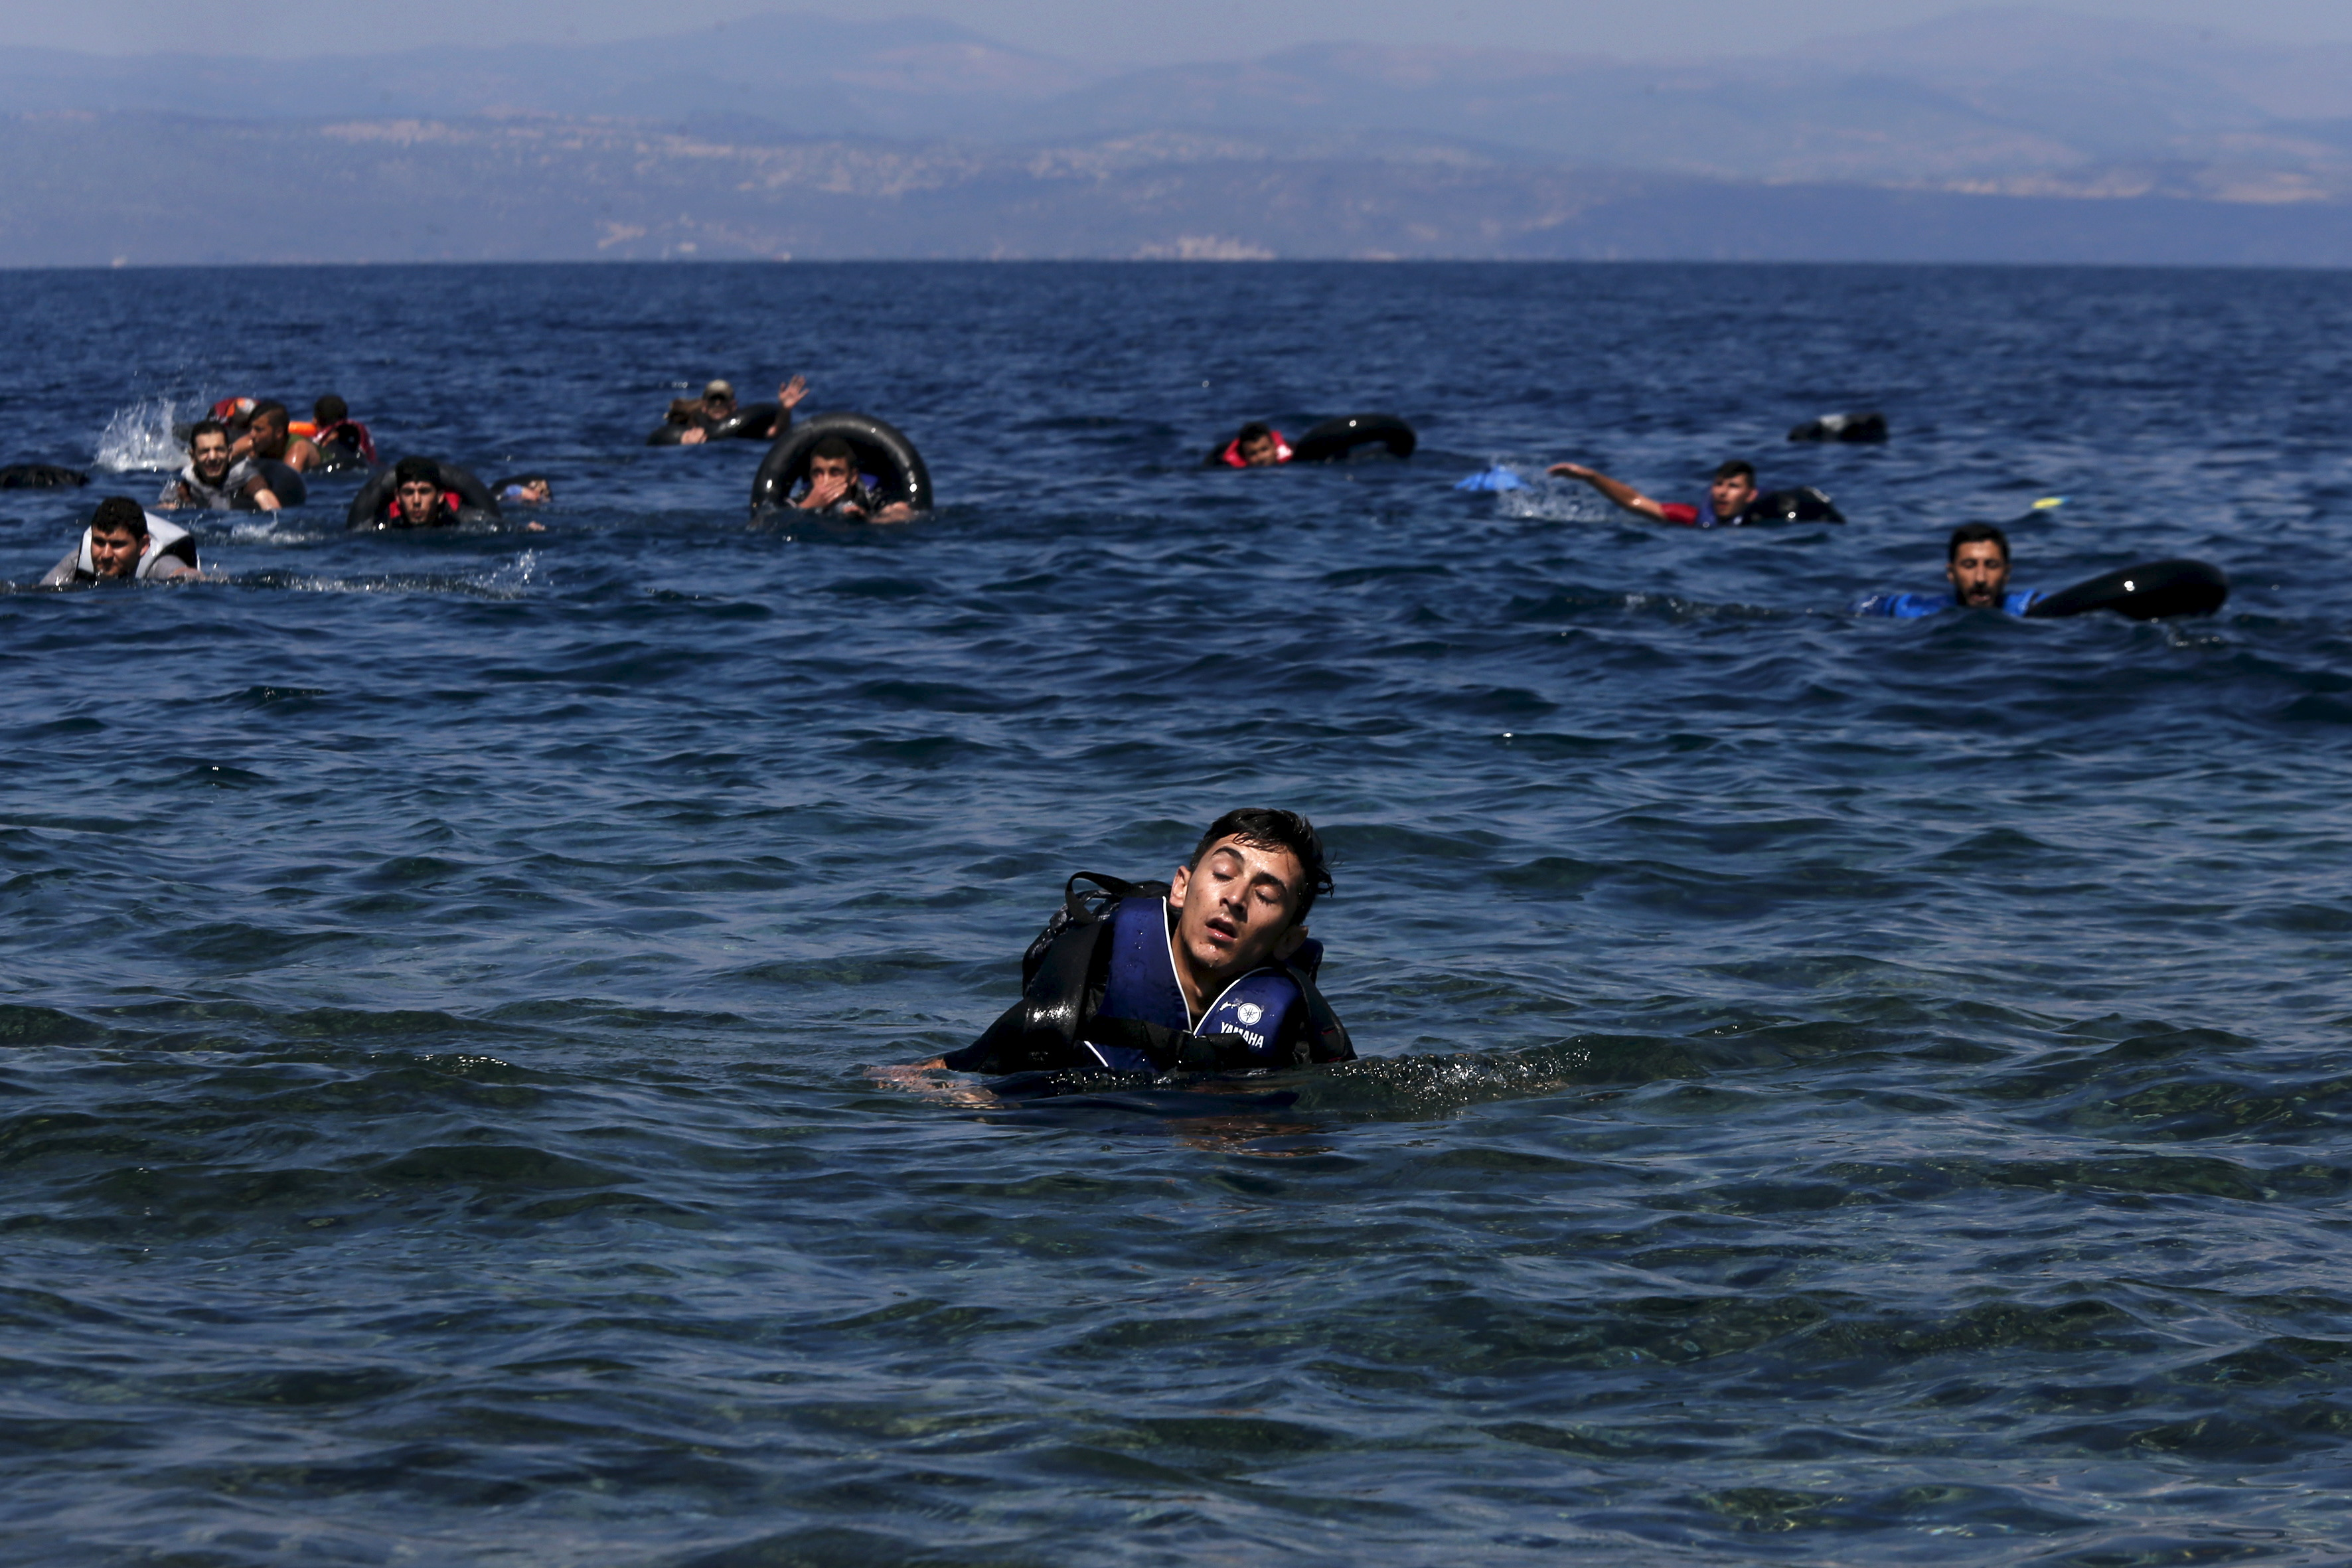 A refugee reacts from exhaustion while swimming towards the shore after a dinghy carrying Syrian and Afghan refugees deflated some 100m away before reaching the Greek island of Lesbos, September 13, 2015. Of the record total of 432,761 refugees and migrants making the perilous journey across the Mediterranean to Europe so far this year, an estimated 309,000 people had arrived by sea in Greece, the International Organization for Migration (IMO) said on Friday. About half of those crossing the Mediterranean are Syrians fleeing civil war, according to the United Nations refugee agency. Photo by Alkis Konstantinidis/Reuters